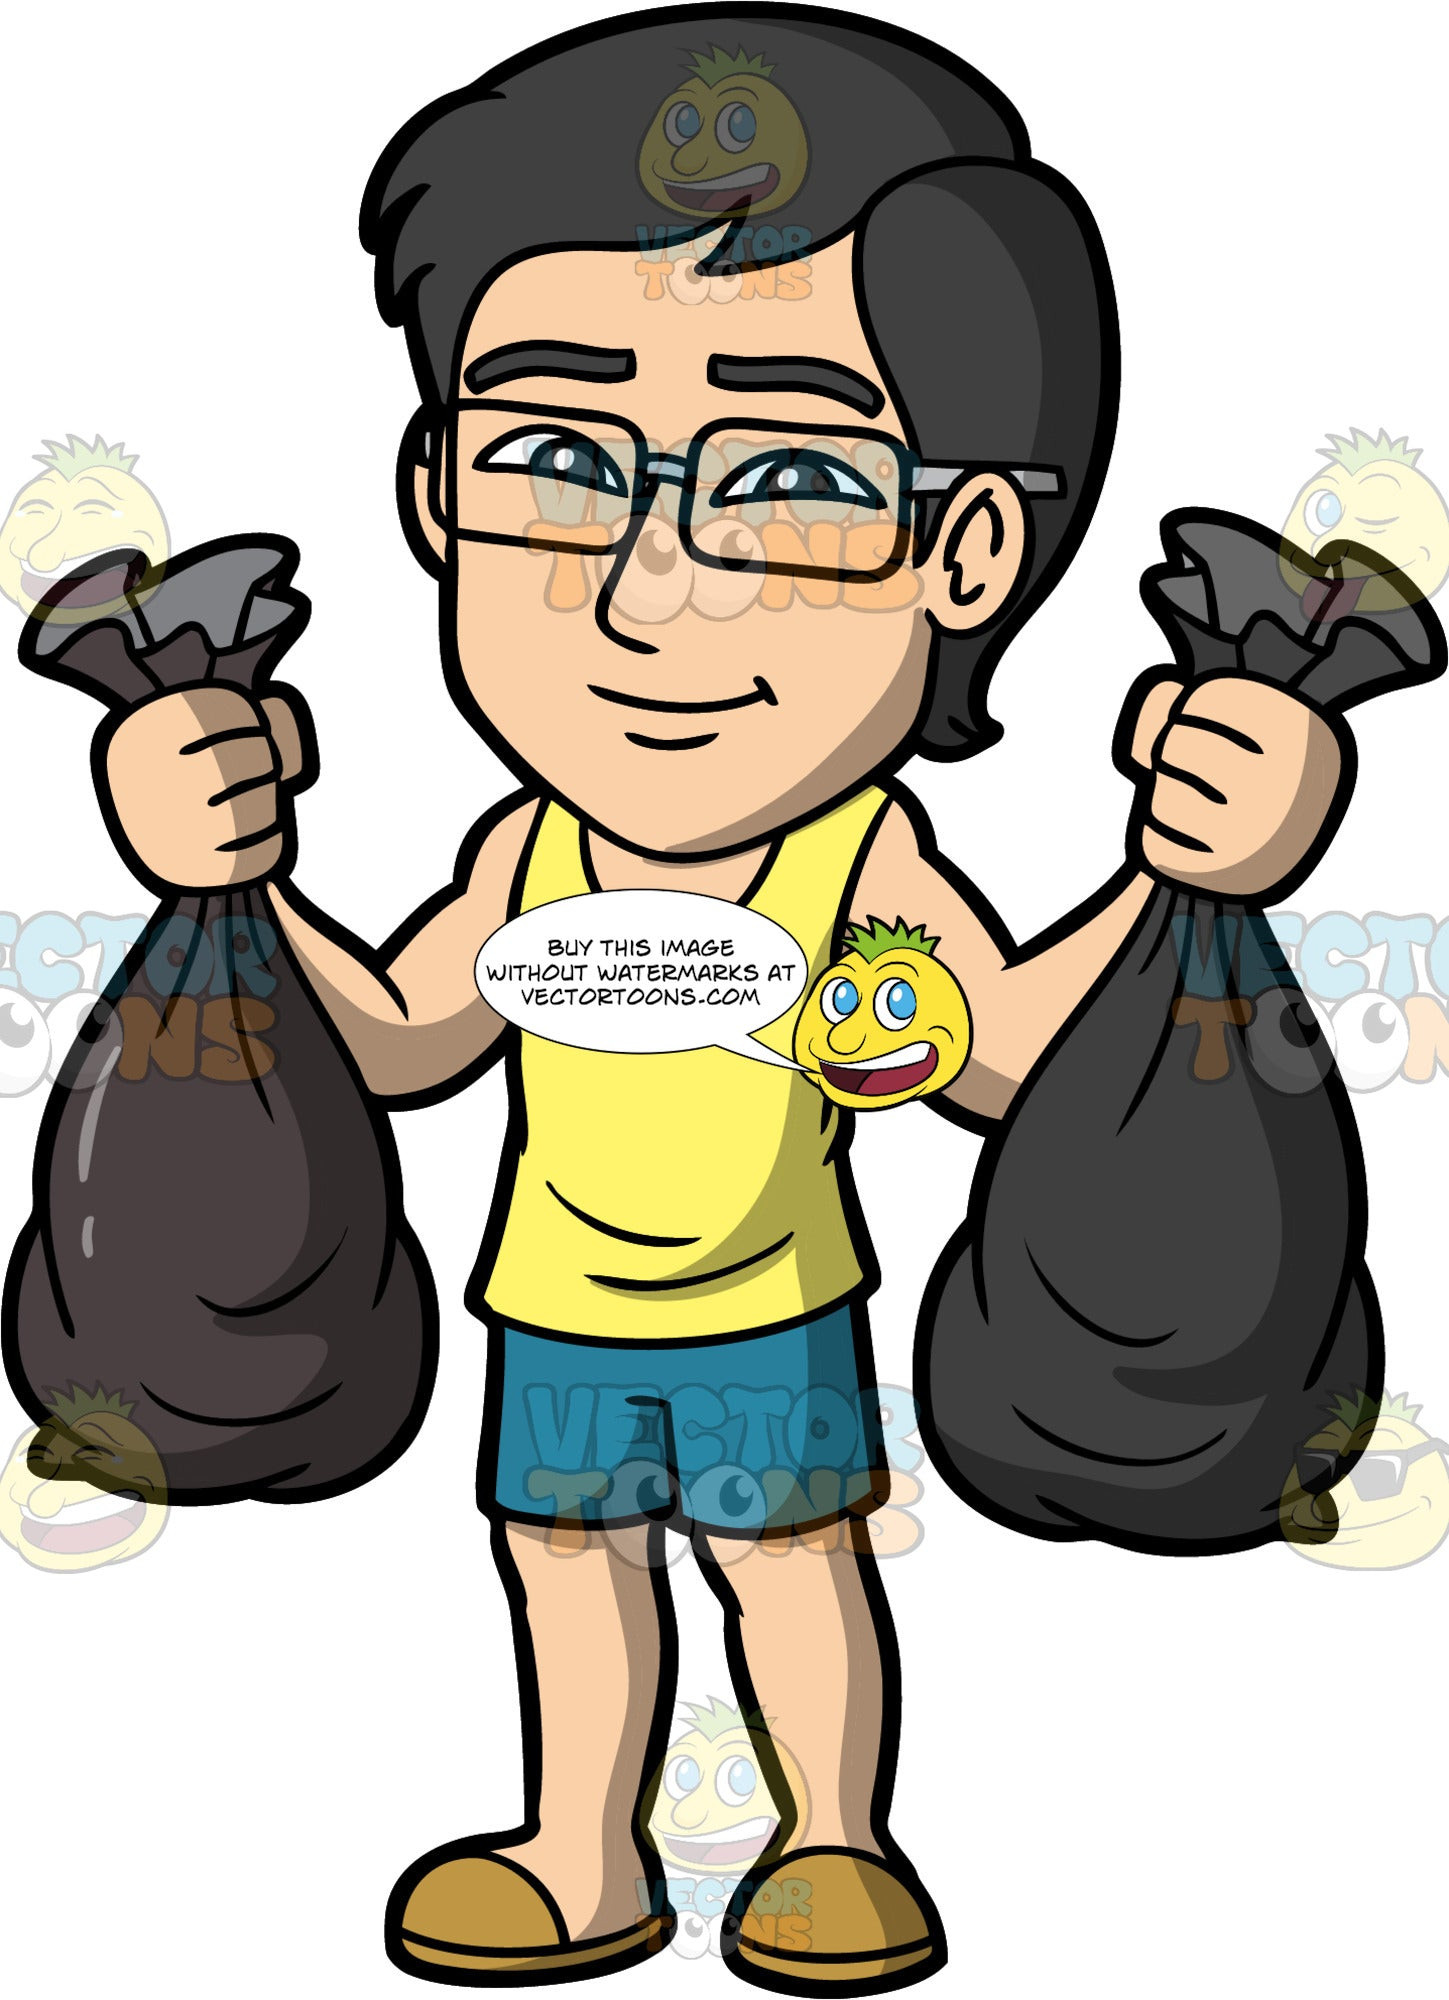 Simon Taking Out The Trash. An Asian man wearing blue shorts, a yellow tank top, slip on shoes, and eyeglasses, carrying two bags of garbage